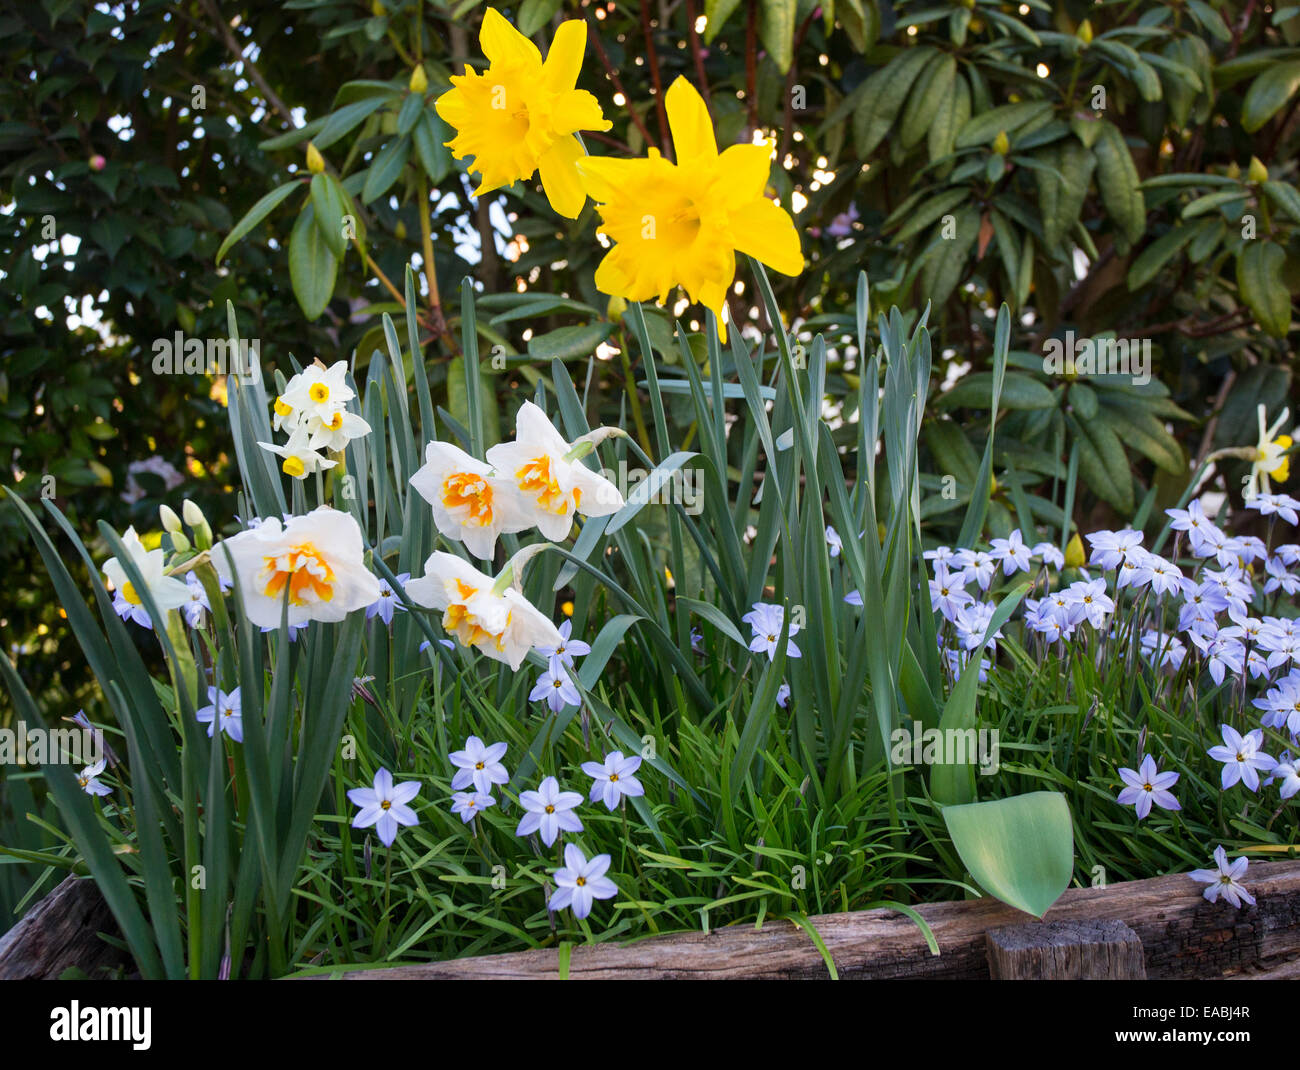 Daffodils And Spring Flowers In A Garden Nsw Australia Stock Photo